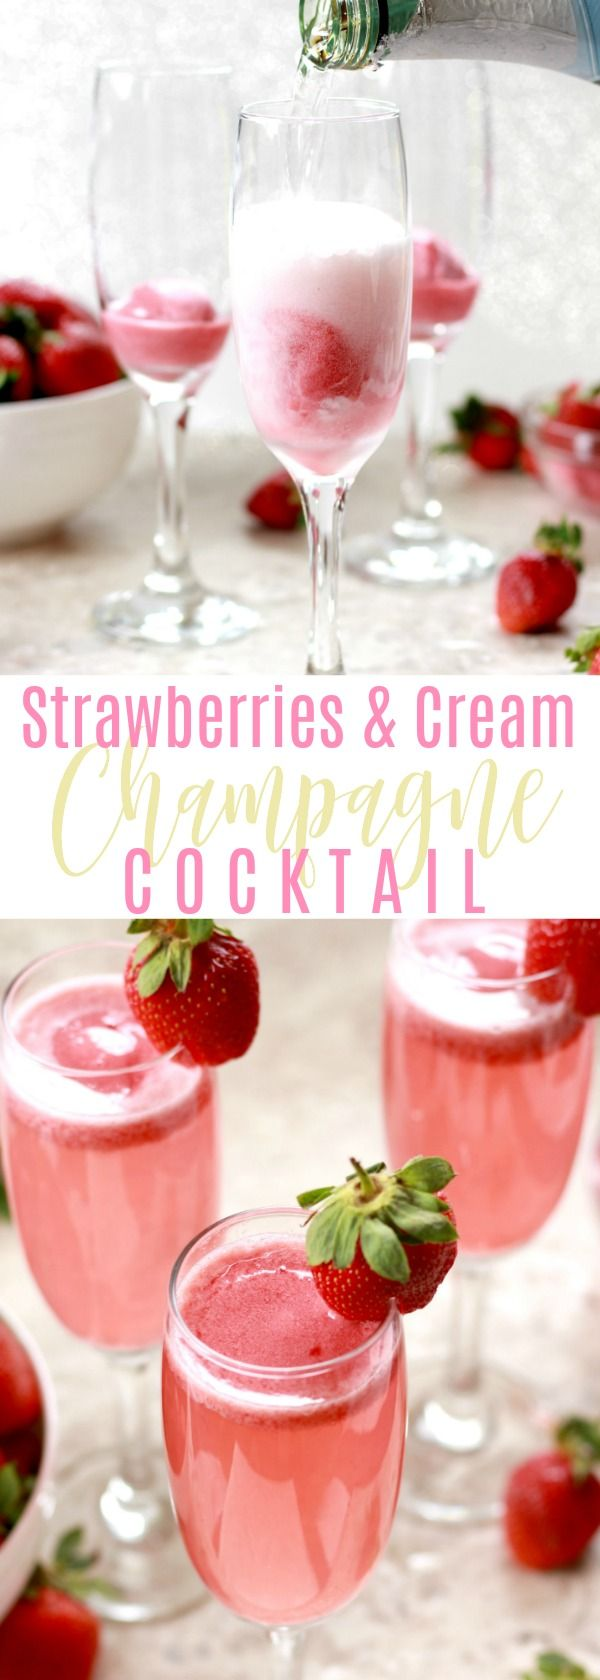 Strawberries & Cream Champagne Cocktail - The Lucky Pear